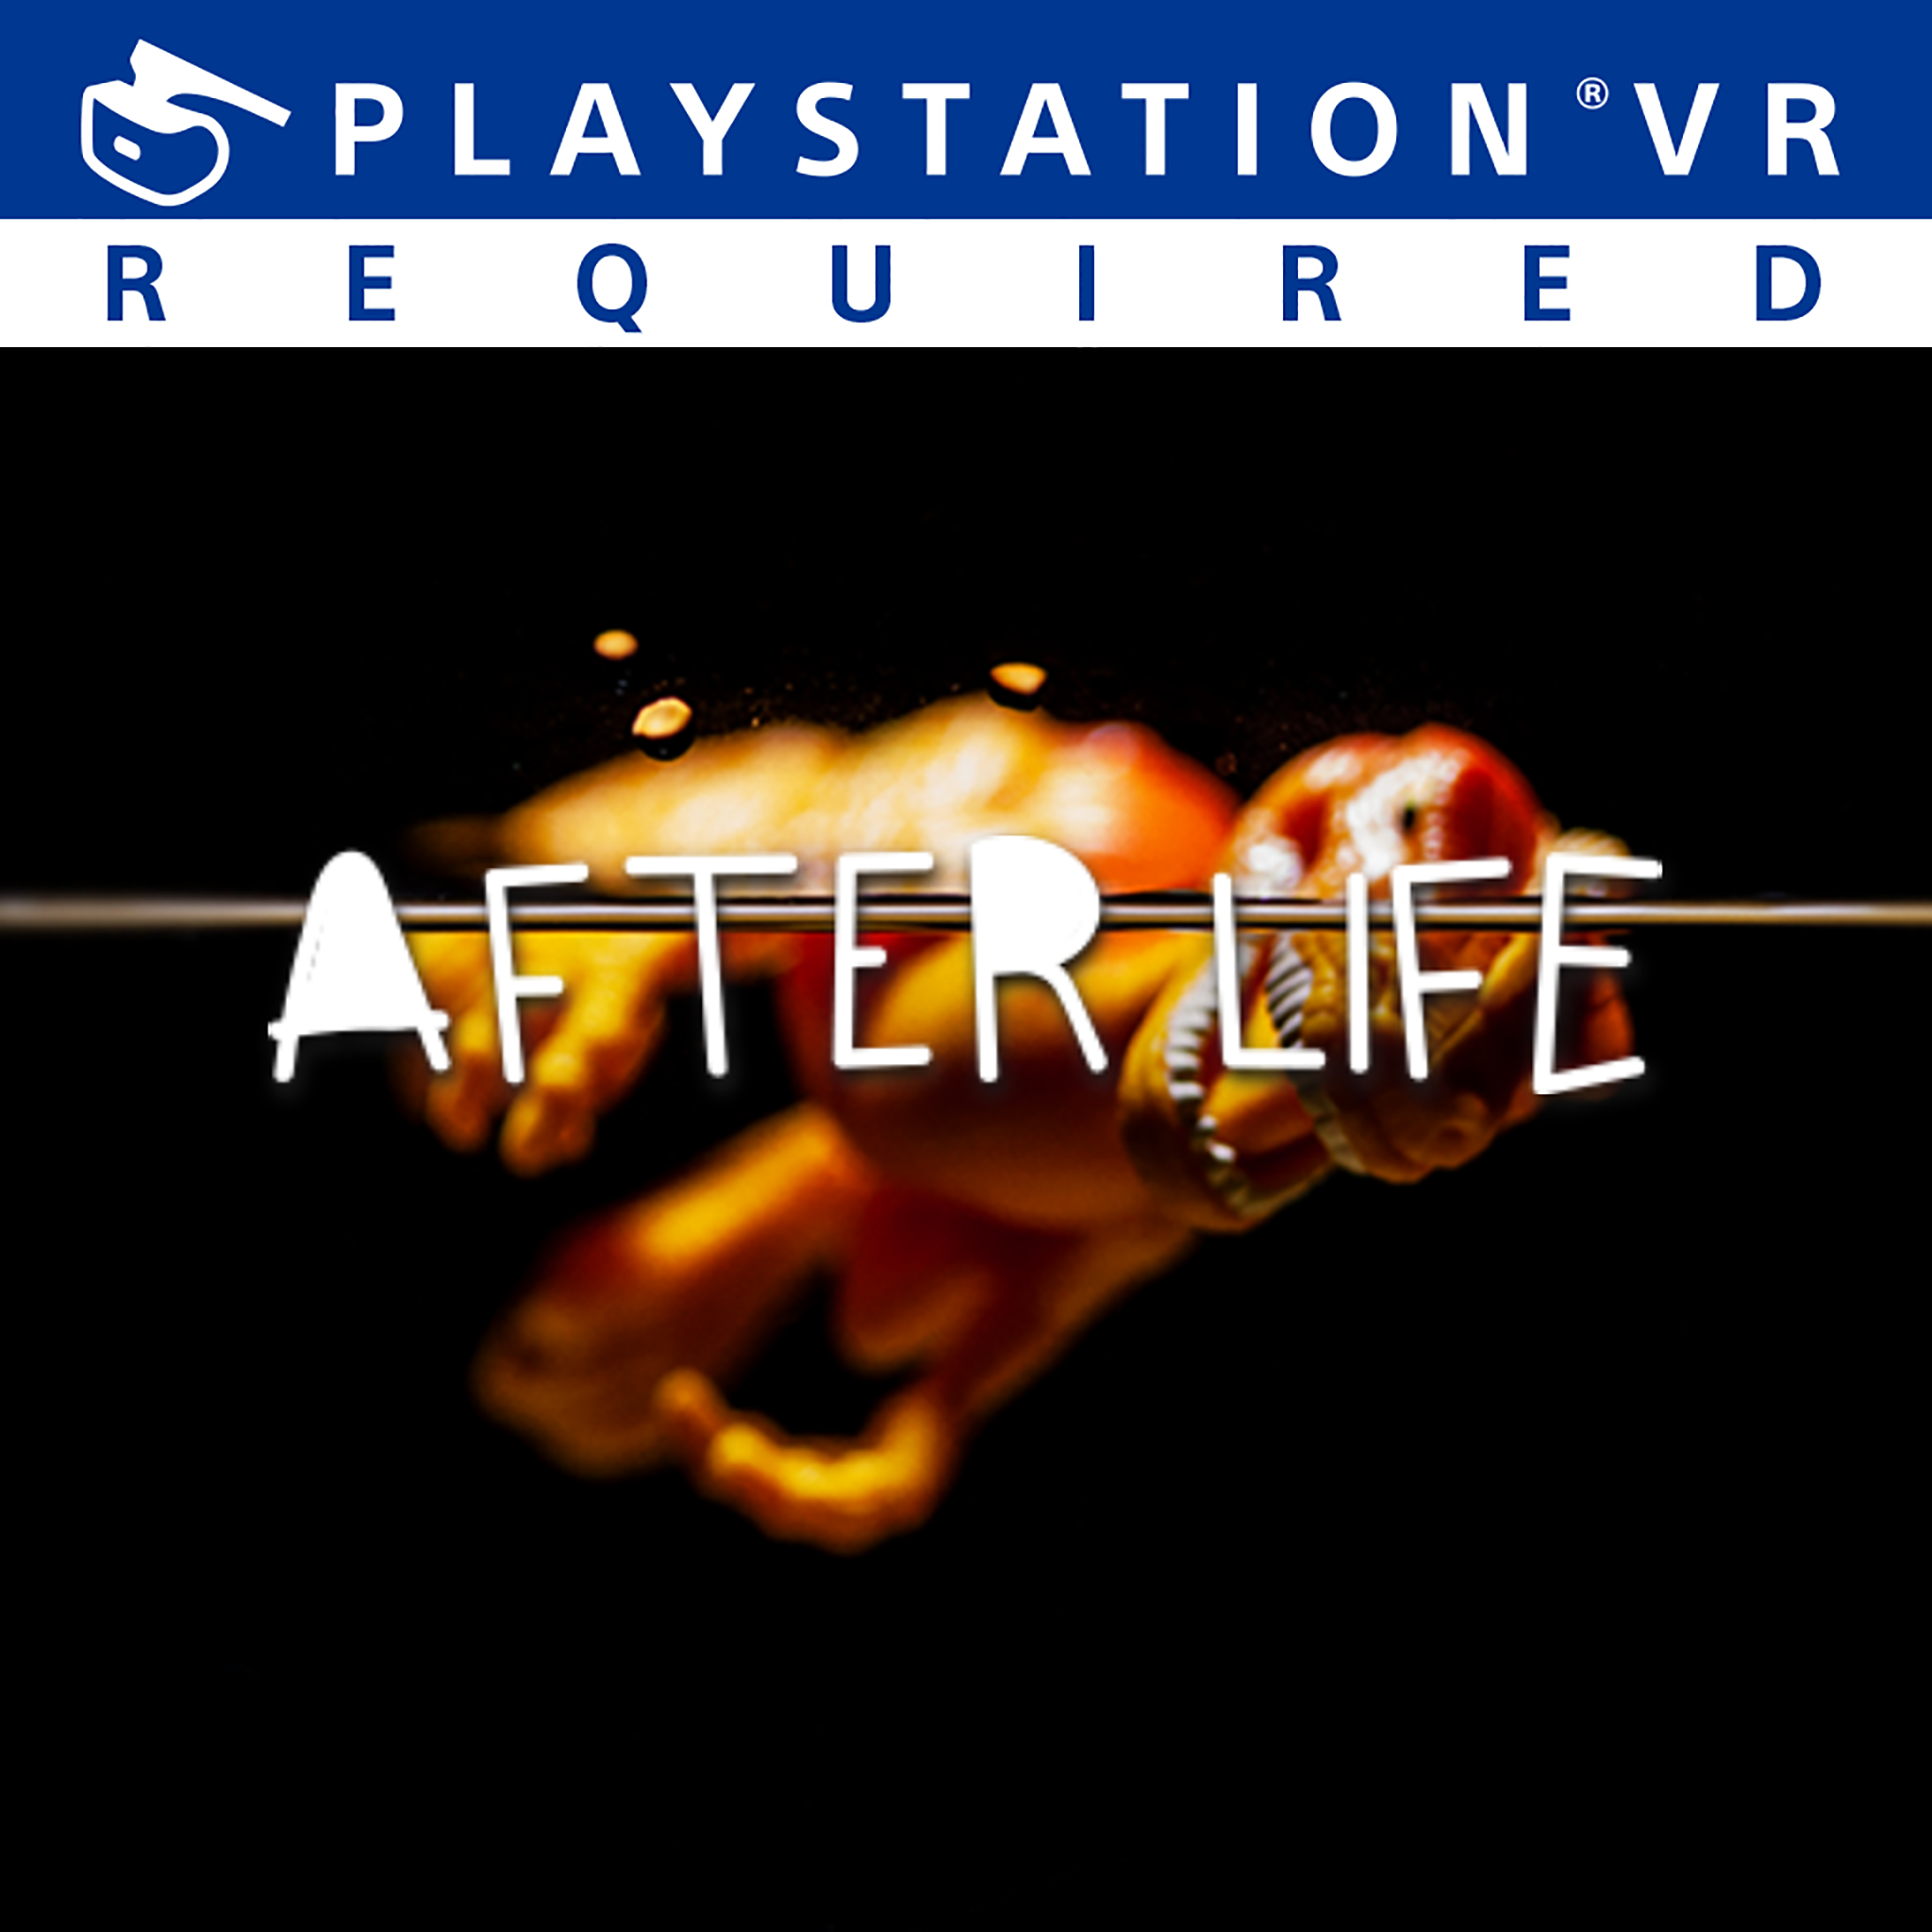 Thumbnail of Afterlife on PS4